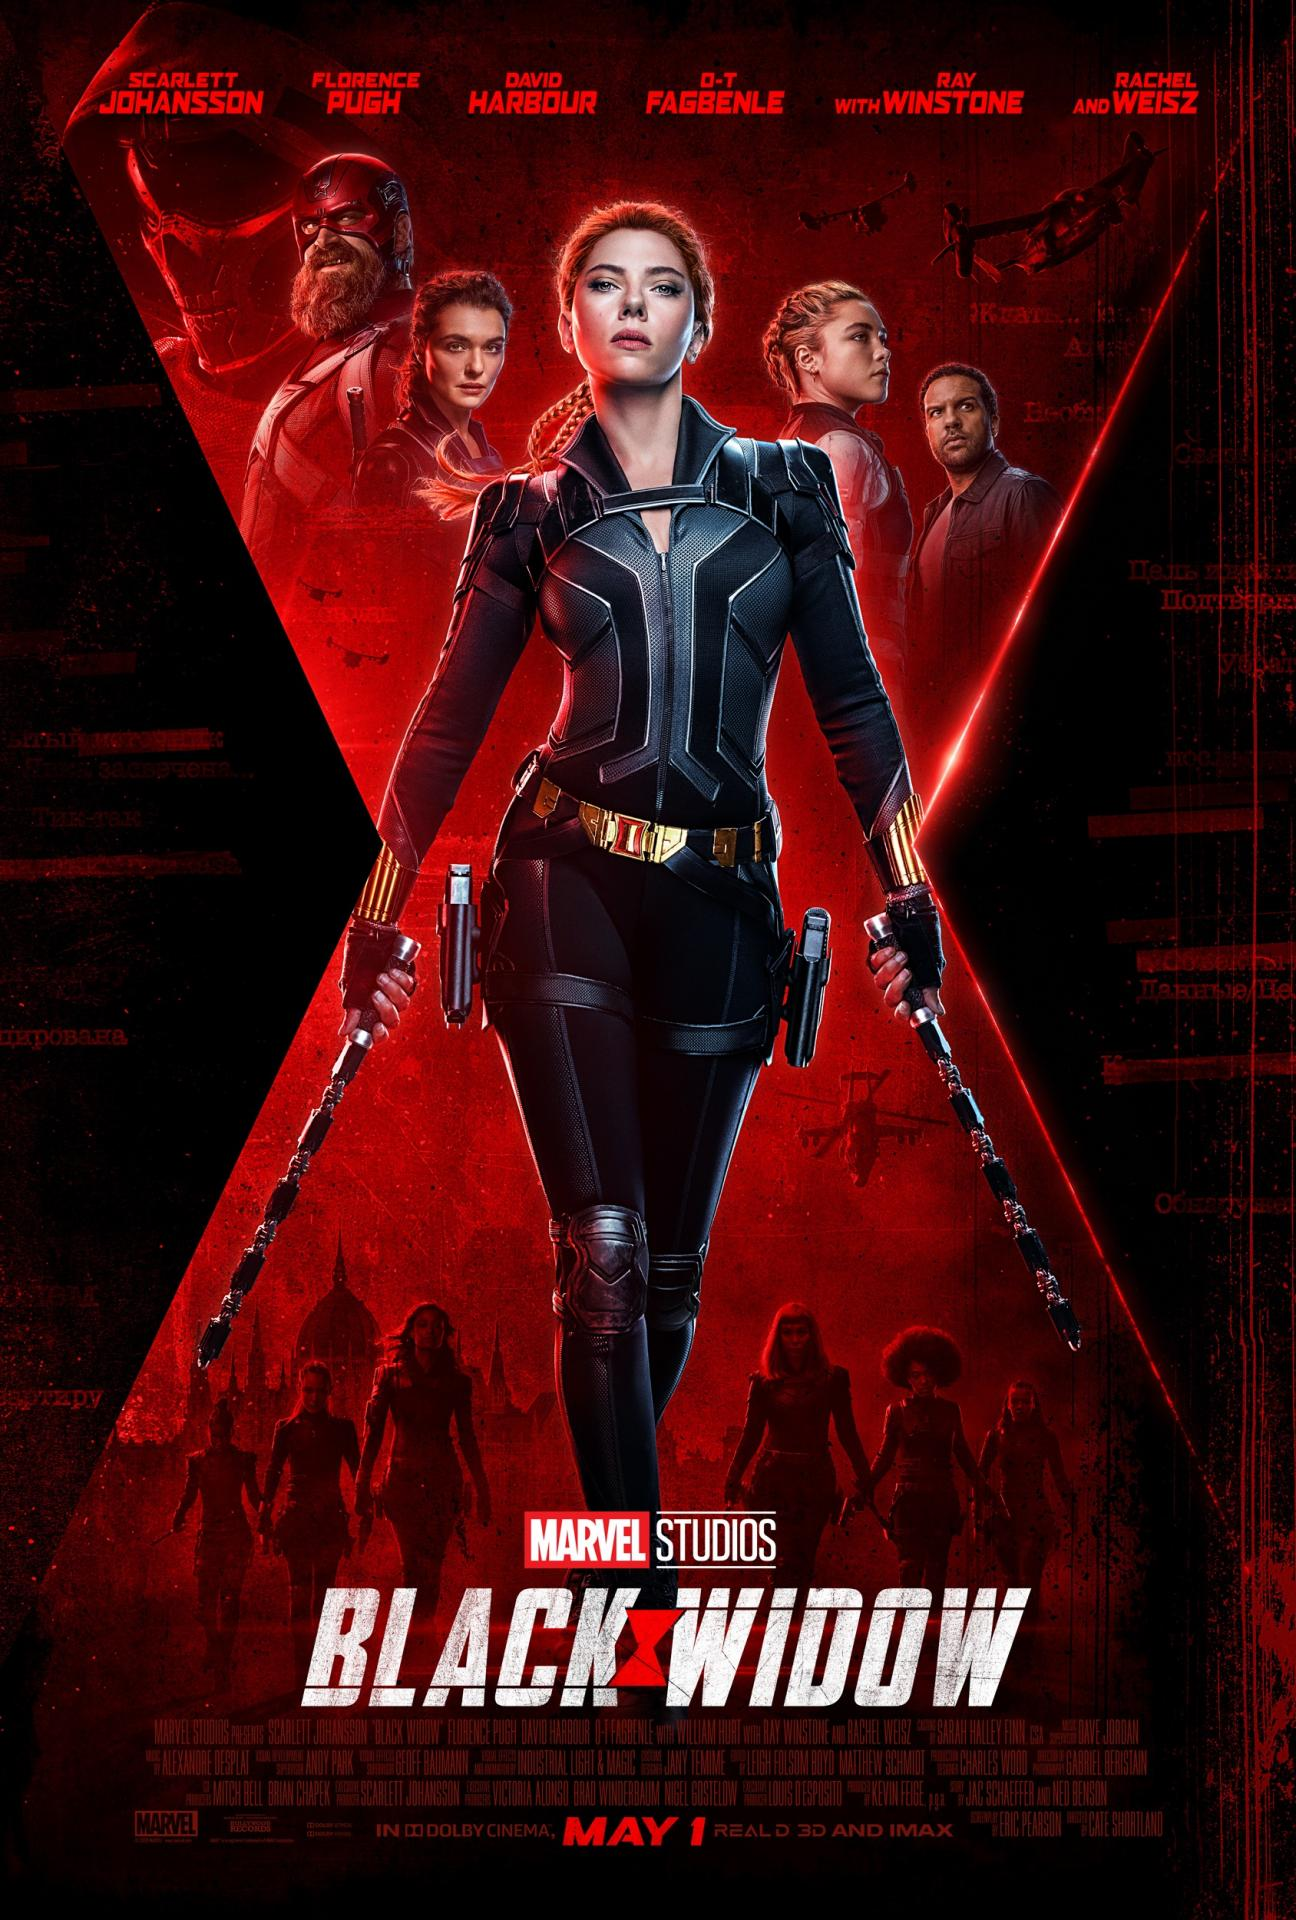 Black widow poster